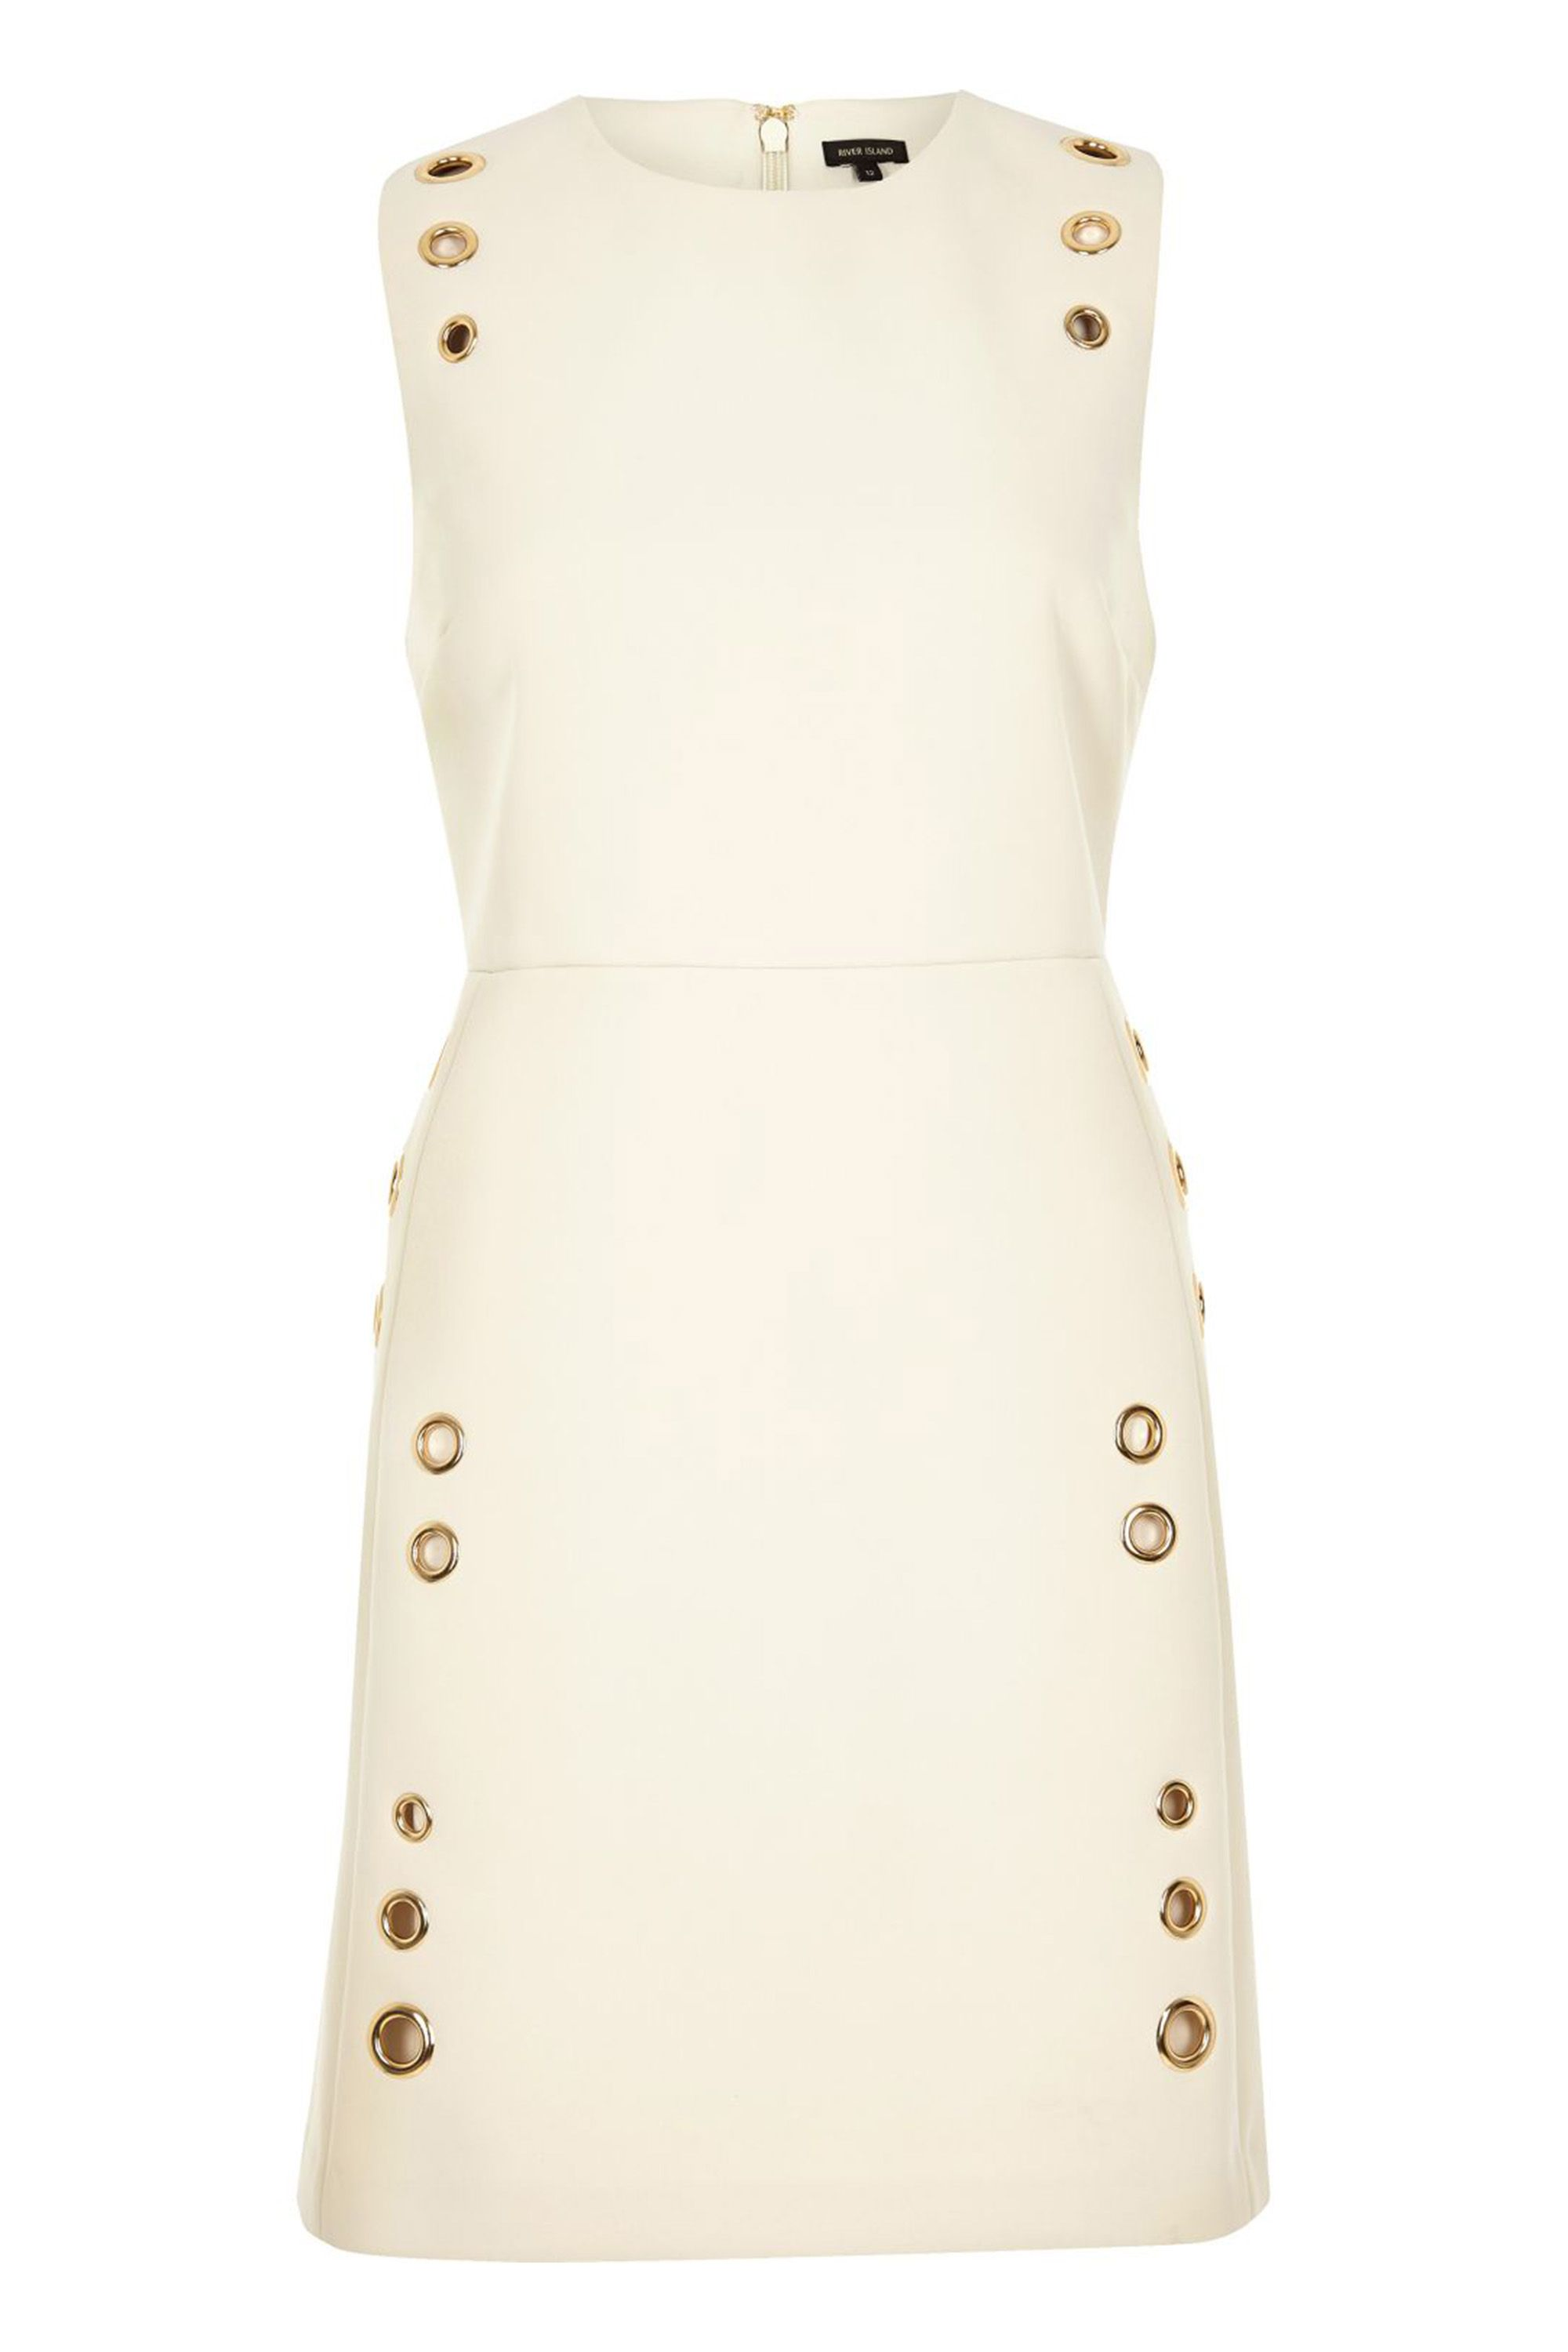 "<p>River Island Cream Eyelet A-Line Dress, $120; <a href=""http://us.riverisland.com/women/dresses/shift-dresses/cream-eyelet-a-line-dress-690066"" target=""_blank"">riverisland.com</a></p>"